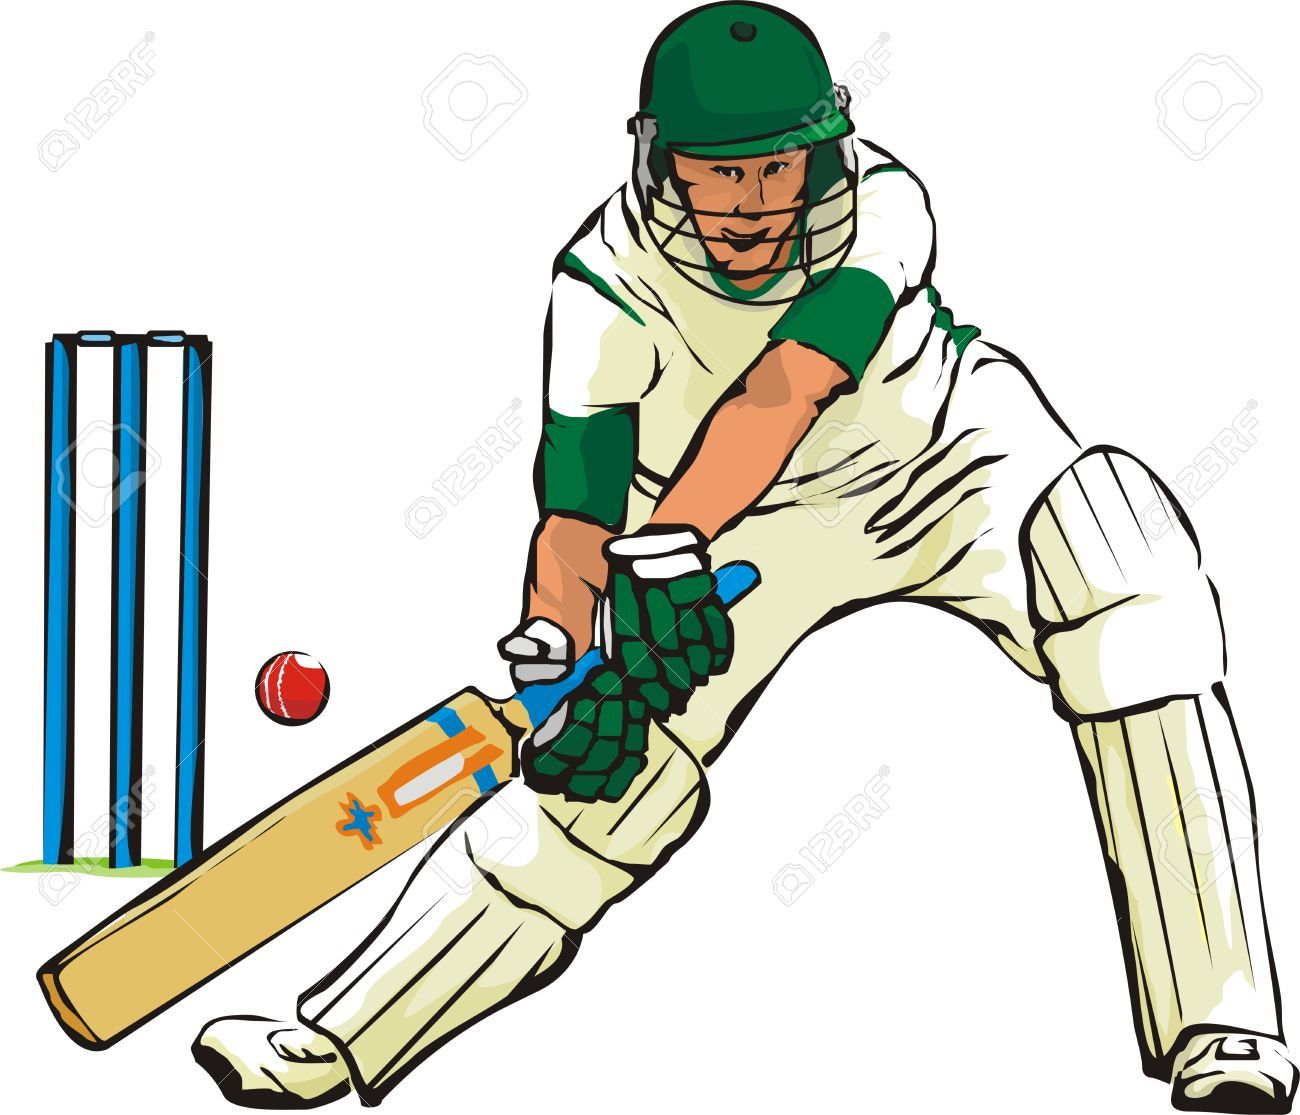 Sports clipart cricket, Sports cricket Transparent FREE for download on  WebStockReview 2020